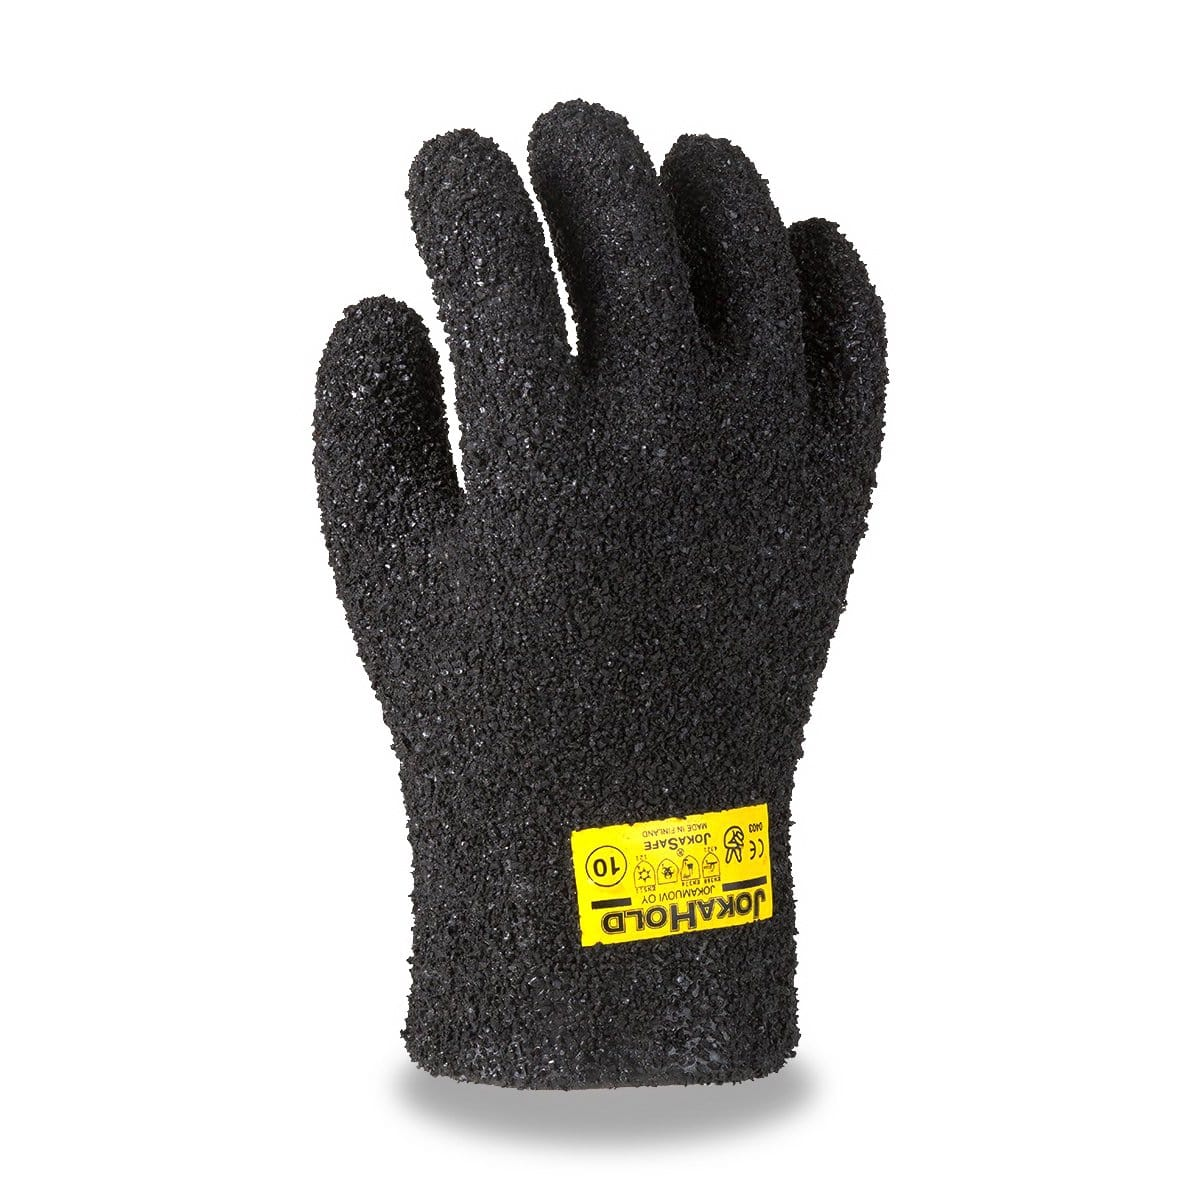 JokaHOLD™ Gloves - Window Cleaning Warehouse Ltd